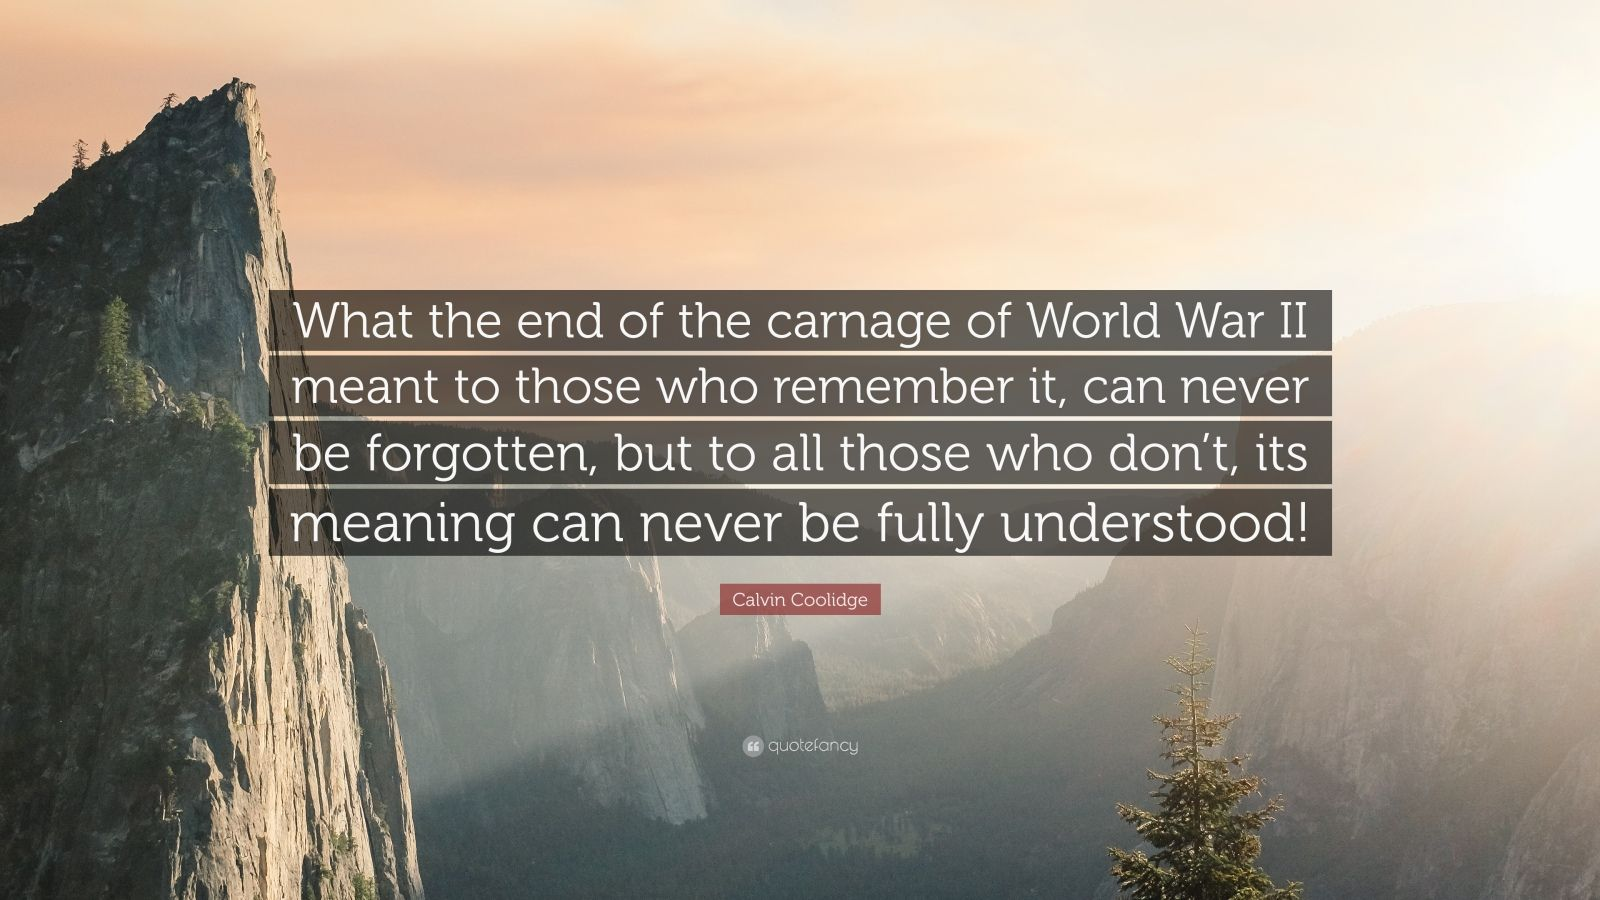 """Calvin Coolidge Quote: """"What the end of the carnage of World War II meant to those who remember it, can never be forgotten, but to all those who don't, its meaning can never be fully understood!"""""""